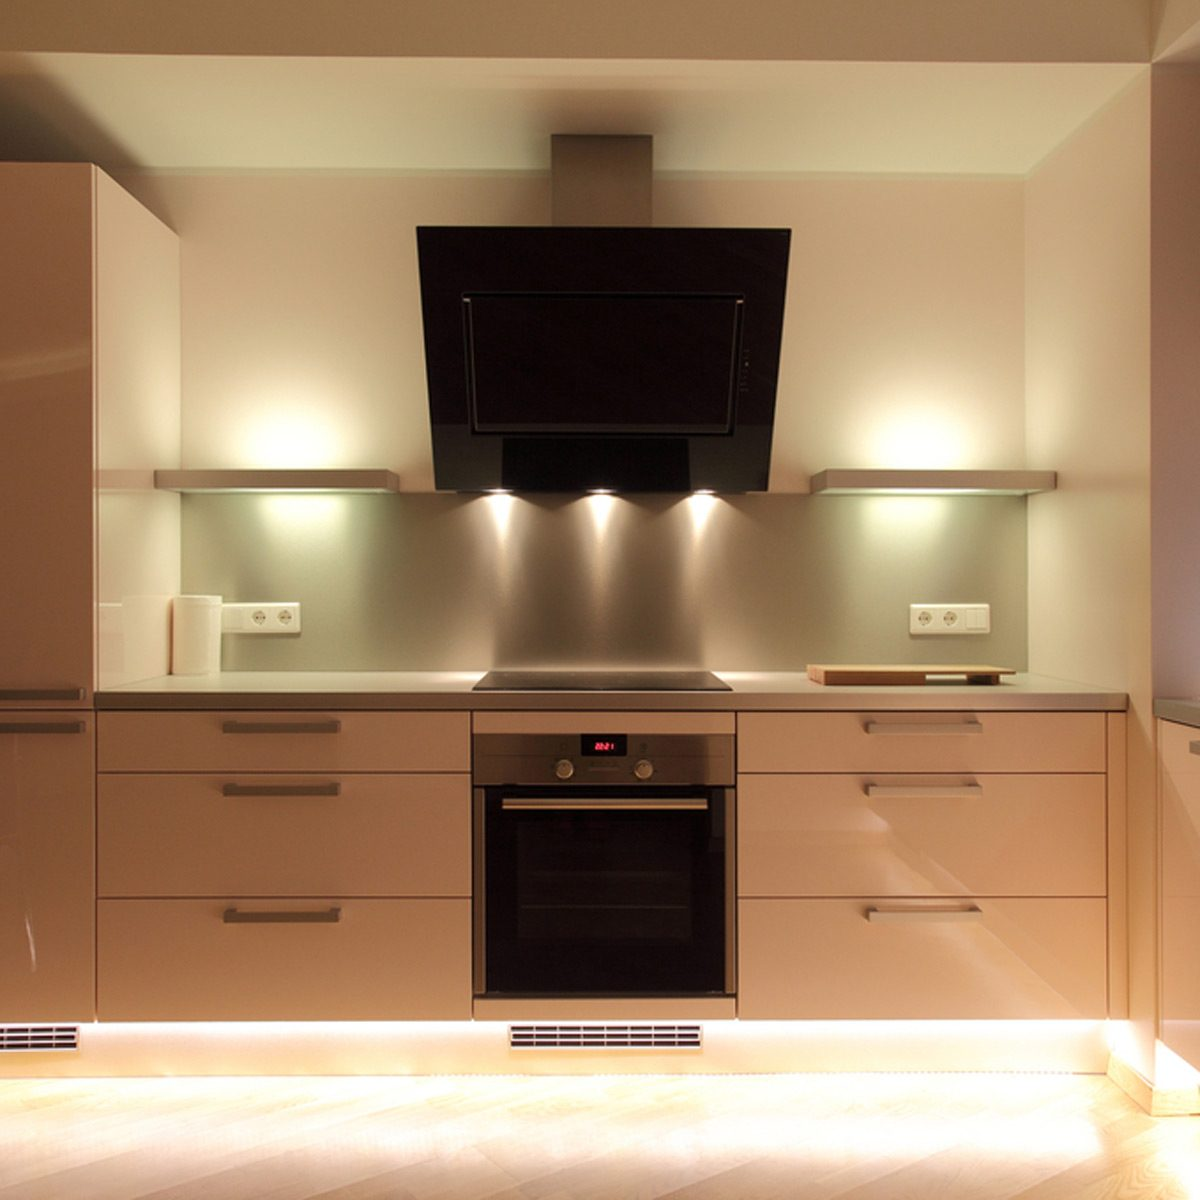 Kitchen Lighting: 14 Tips For Better Kitchen Lighting